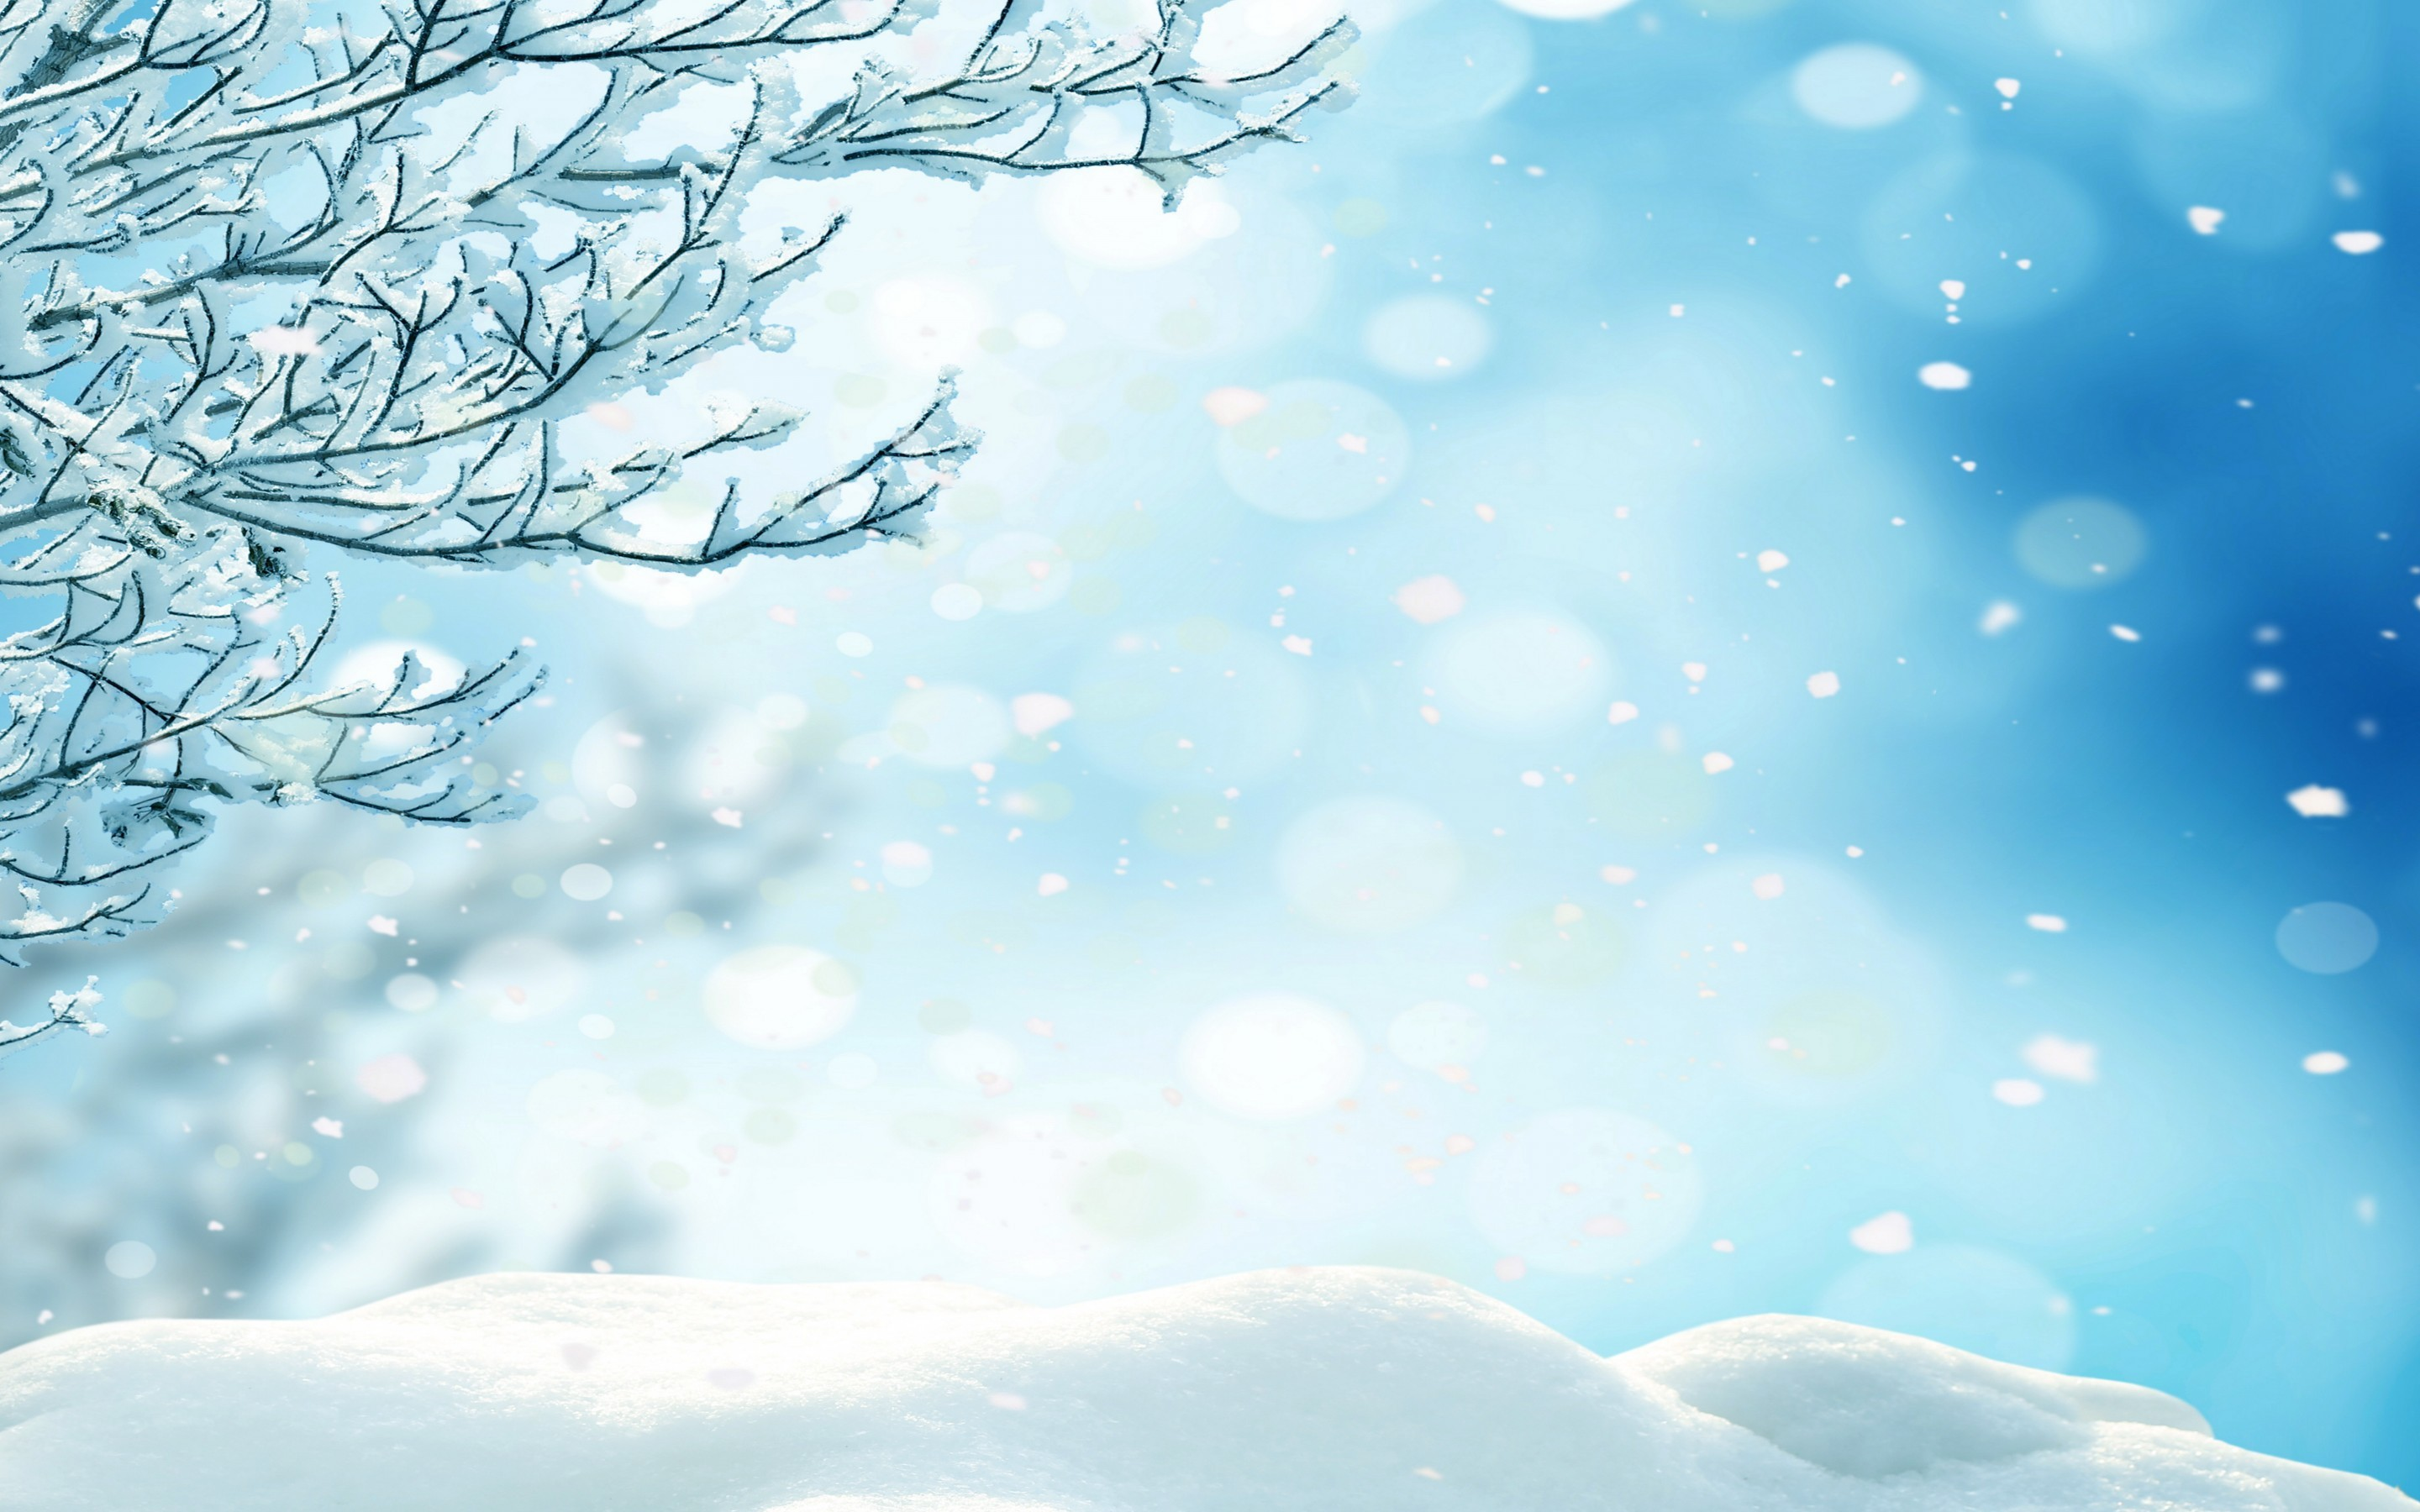 Winter Snowflakes Wallpaper 42 Images